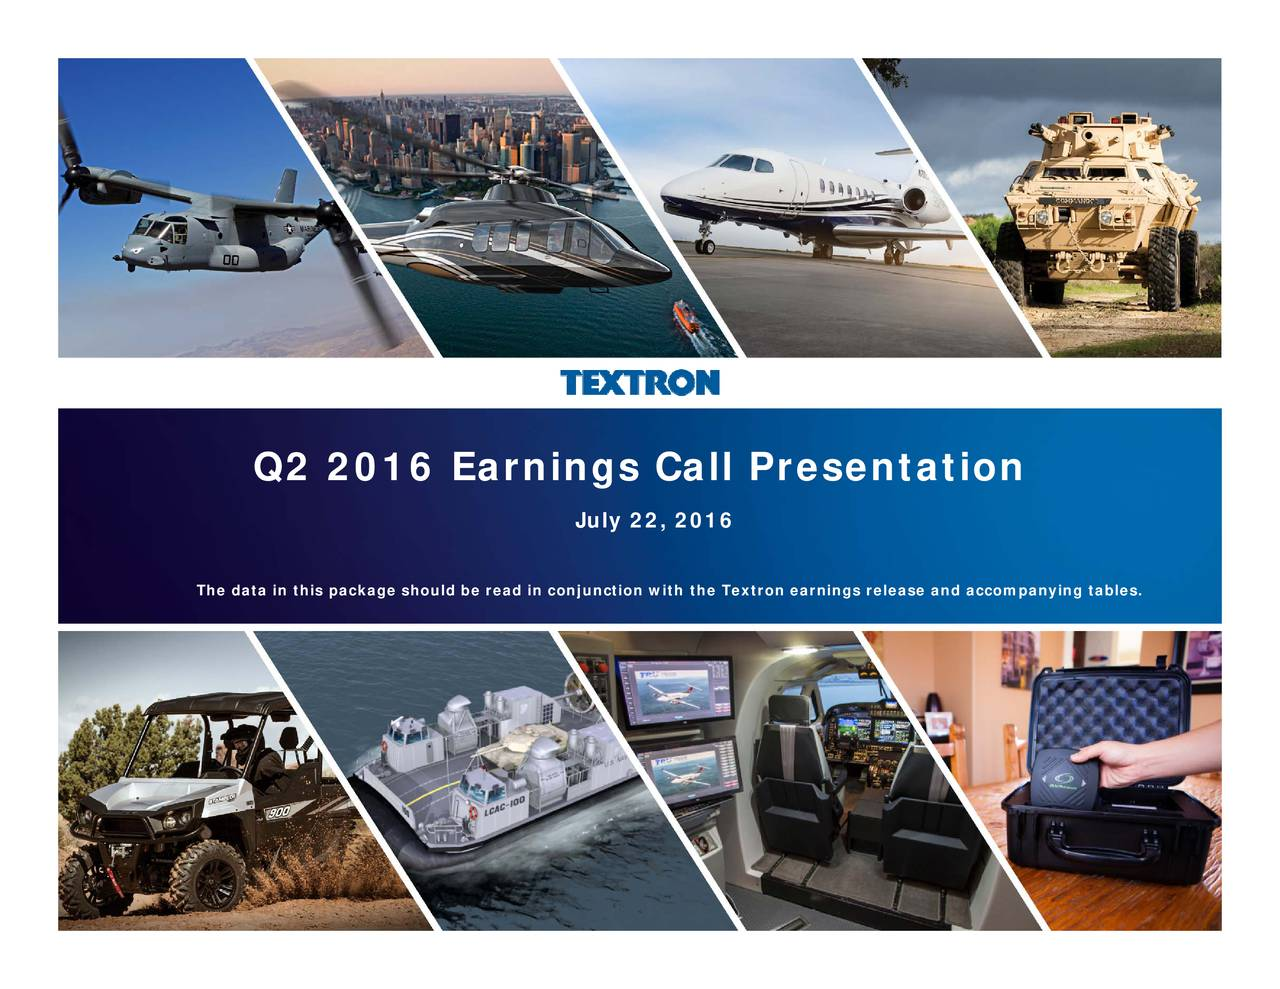 with the Textron earnings release and accompanying tables. July 22, 2016 Q2 2016 Earnings Call Presentation The data in this package should be read in conjunction Textron Inc. Q2 2016 Earnings Call Presentation; July 22, 2016